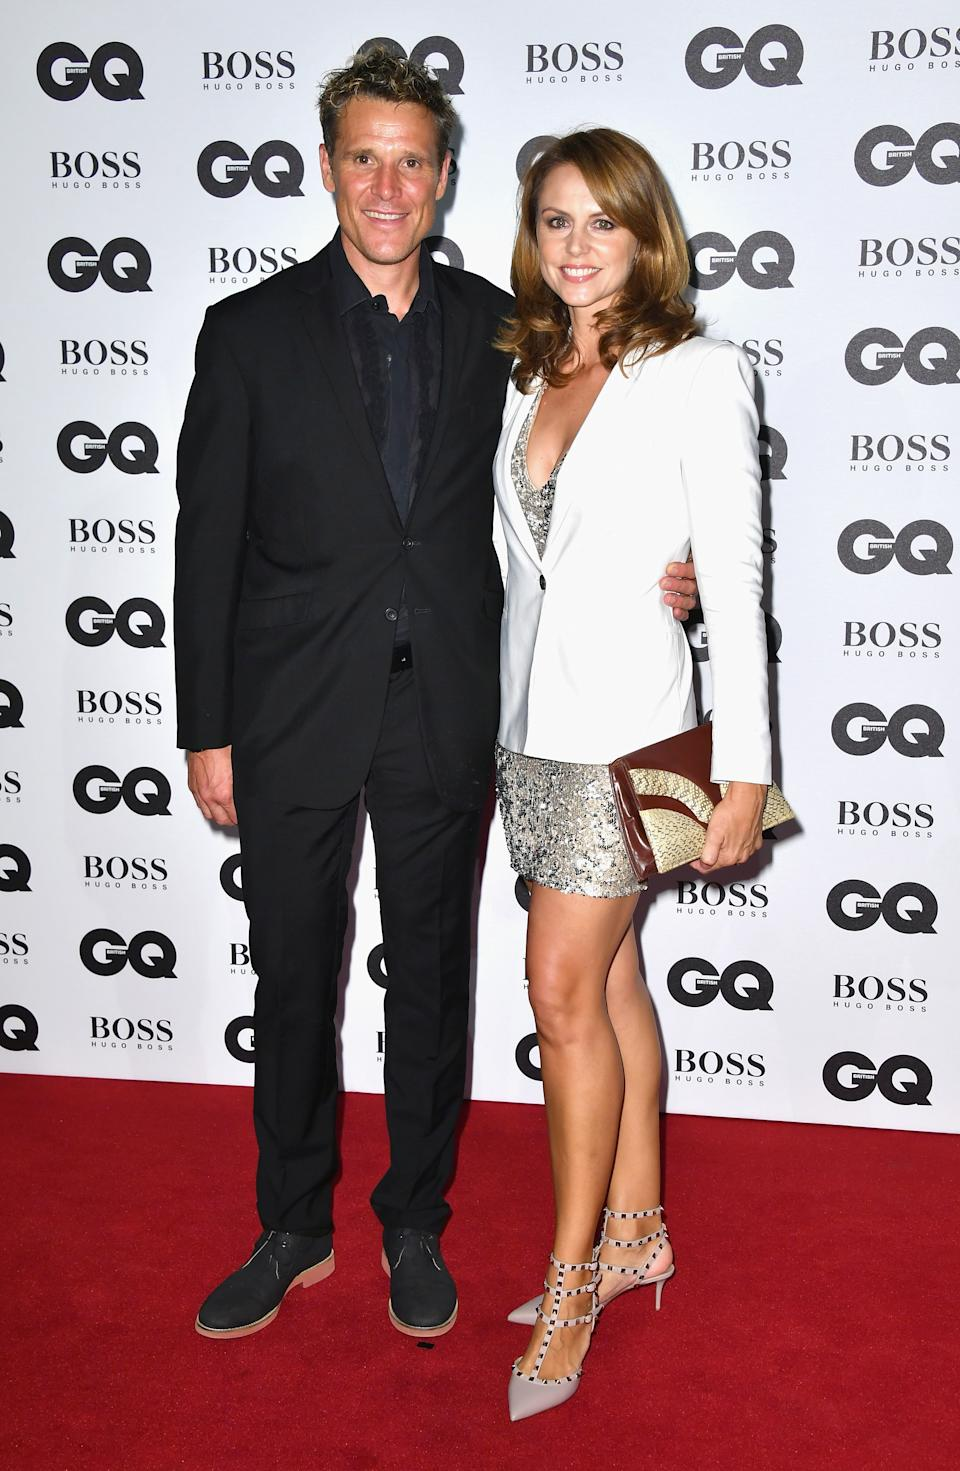 LONDON, ENGLAND - SEPTEMBER 06:  James Cracknell and Beverley Turner arrive for GQ Men Of The Year Awards 2016 at Tate Modern on September 6, 2016 in London, England.  (Photo by Gareth Cattermole/Getty Images)